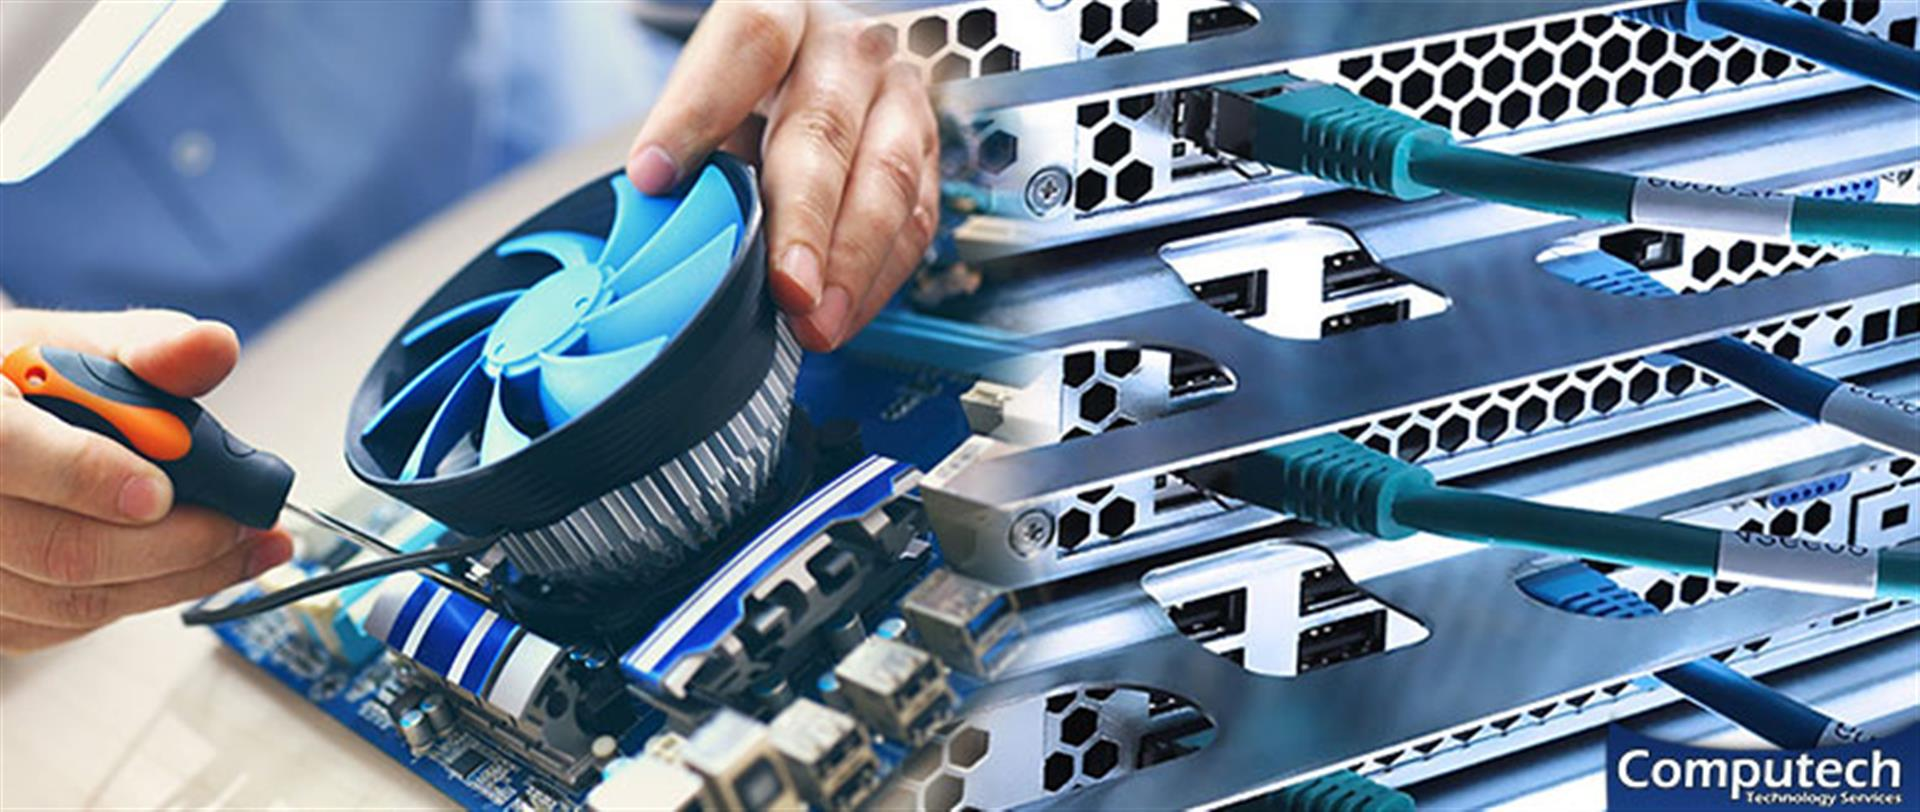 Lovettsville Virginia On-Site PC & Printer Repair, Networking, Voice & Data Cabling Solutions